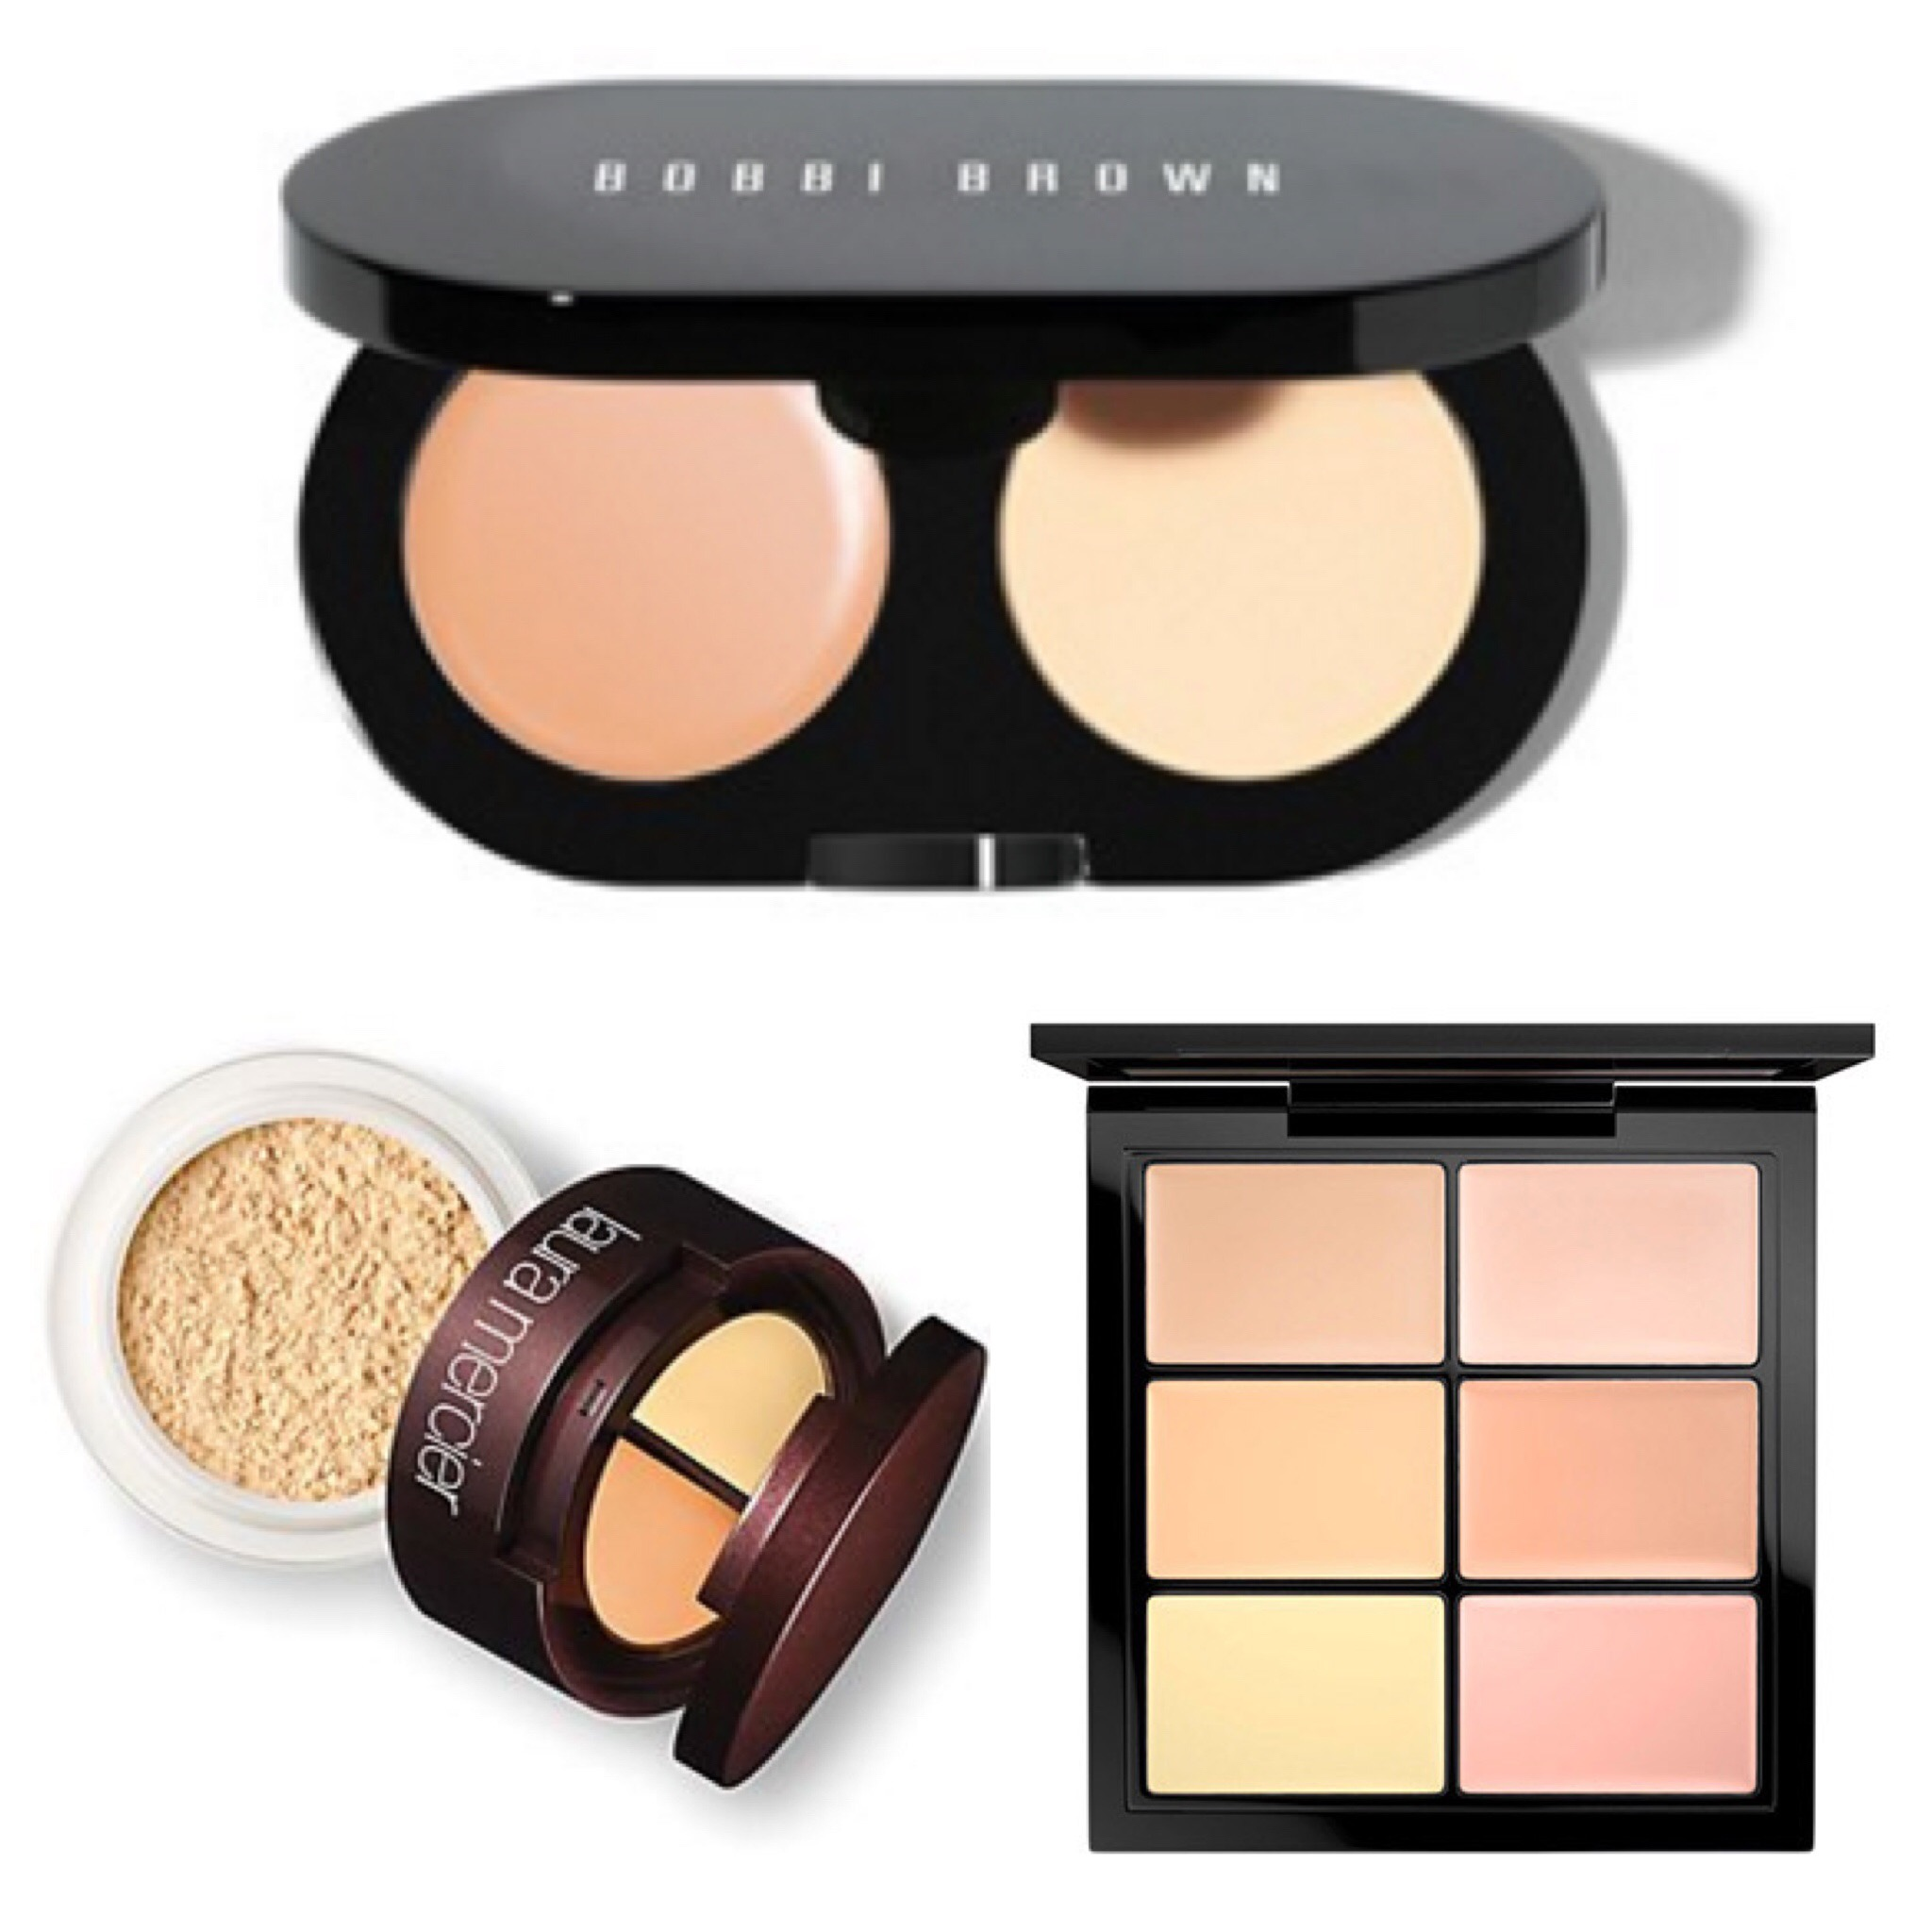 Bobby Brown Creamy Concealer Kit; Laura Mercer Undercover pot; Mac Correct conceal and correct Palette